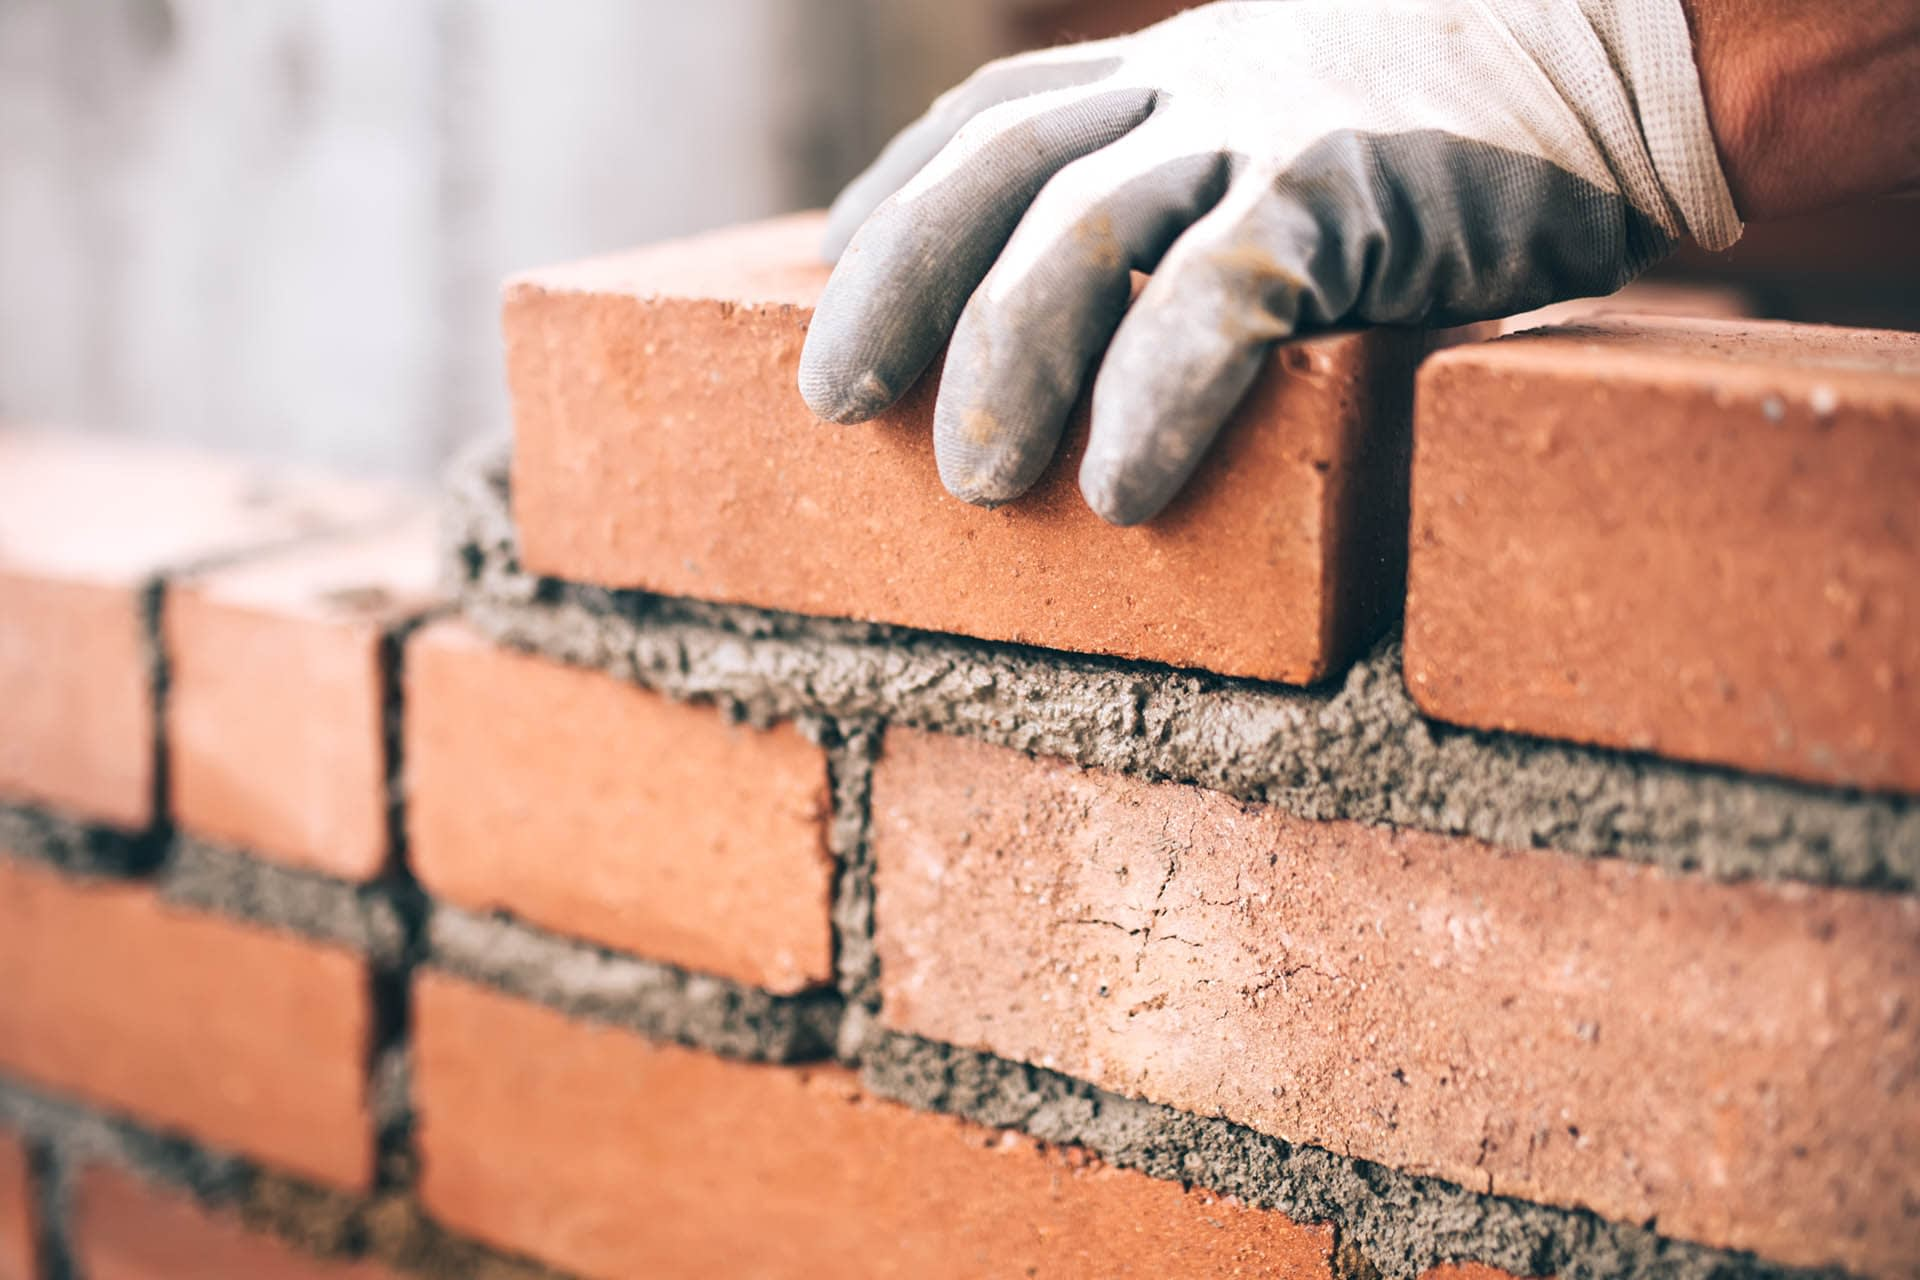 cement-brick-laying-ready-to-mix-structure-building-materials